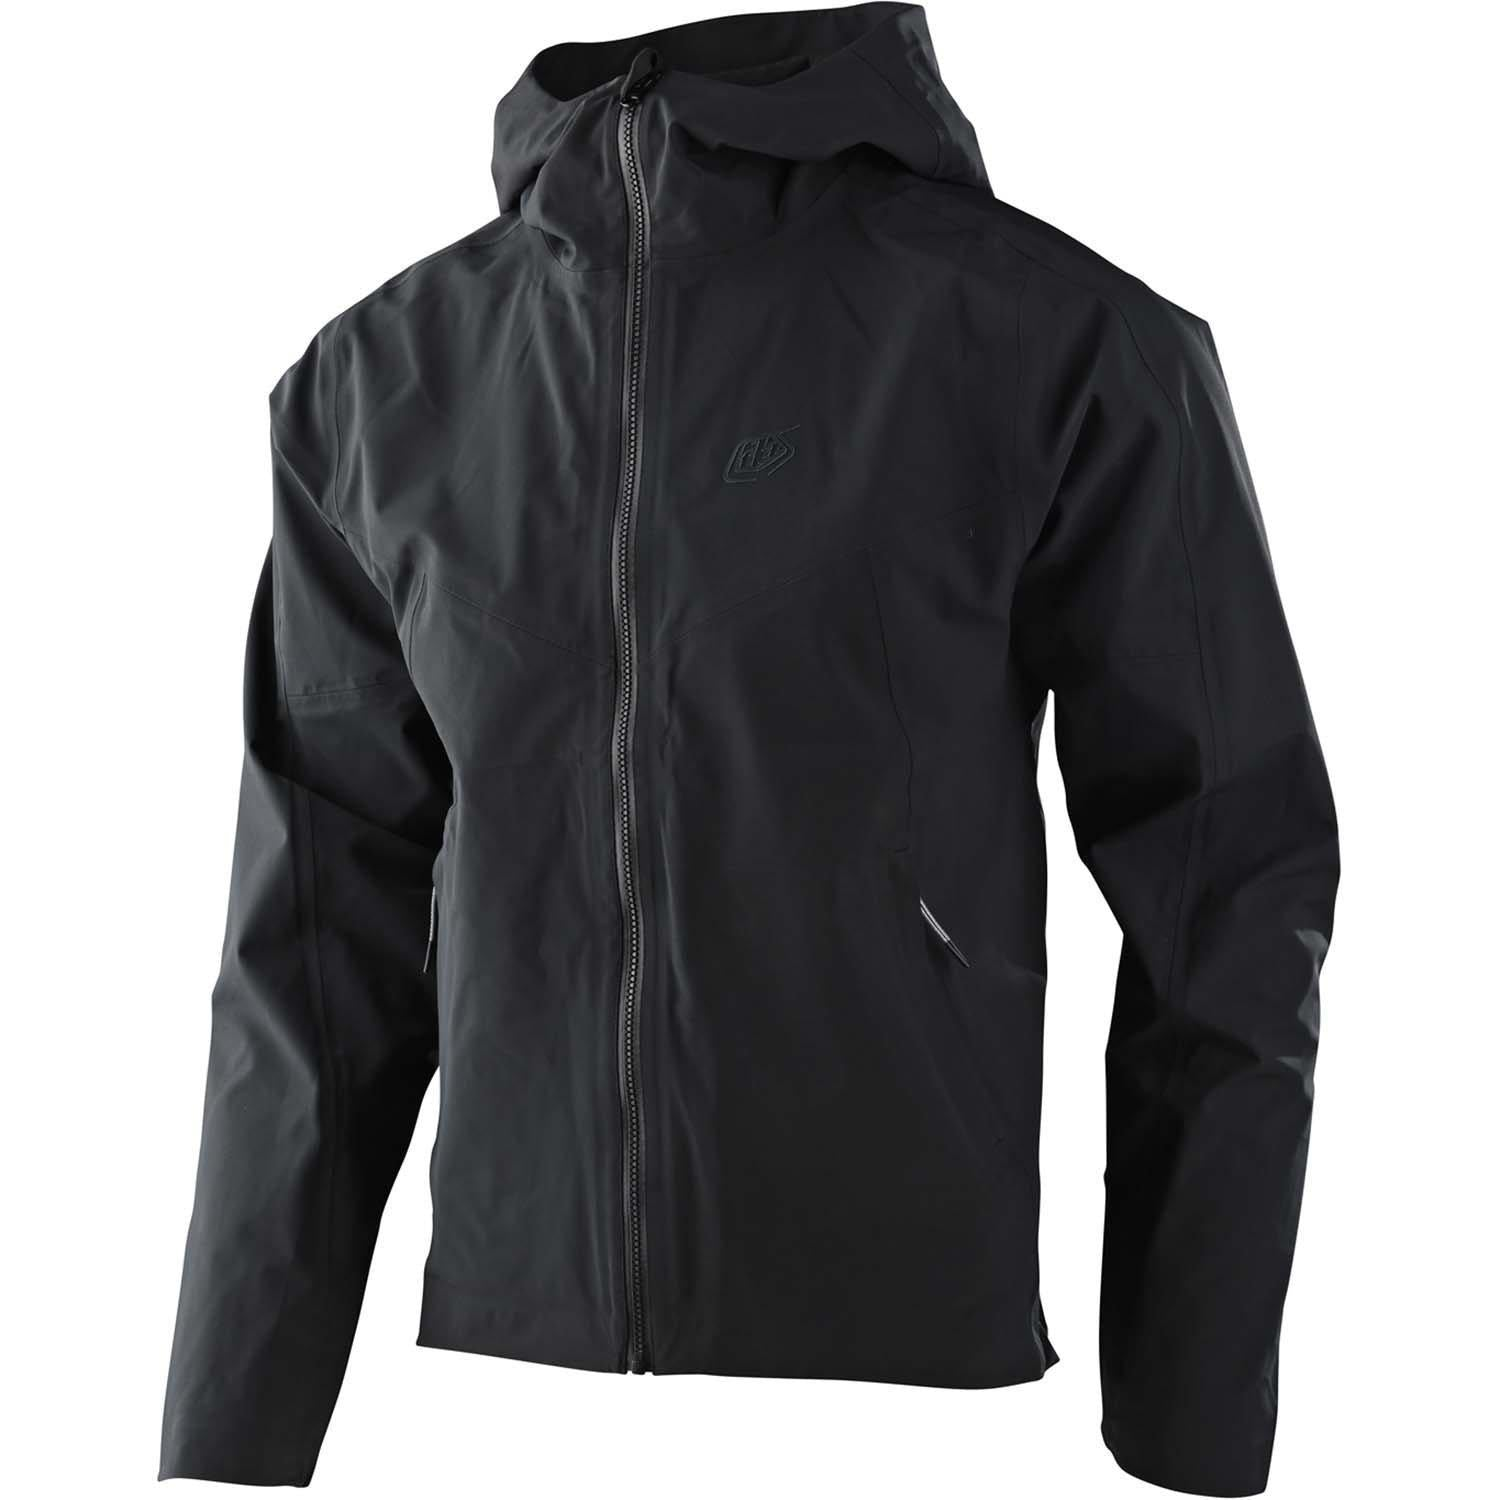 Troy Lee Designs-Troy Lee Designs Descent Jacket-Black-L-TLD860503004-saddleback-elite-performance-cycling